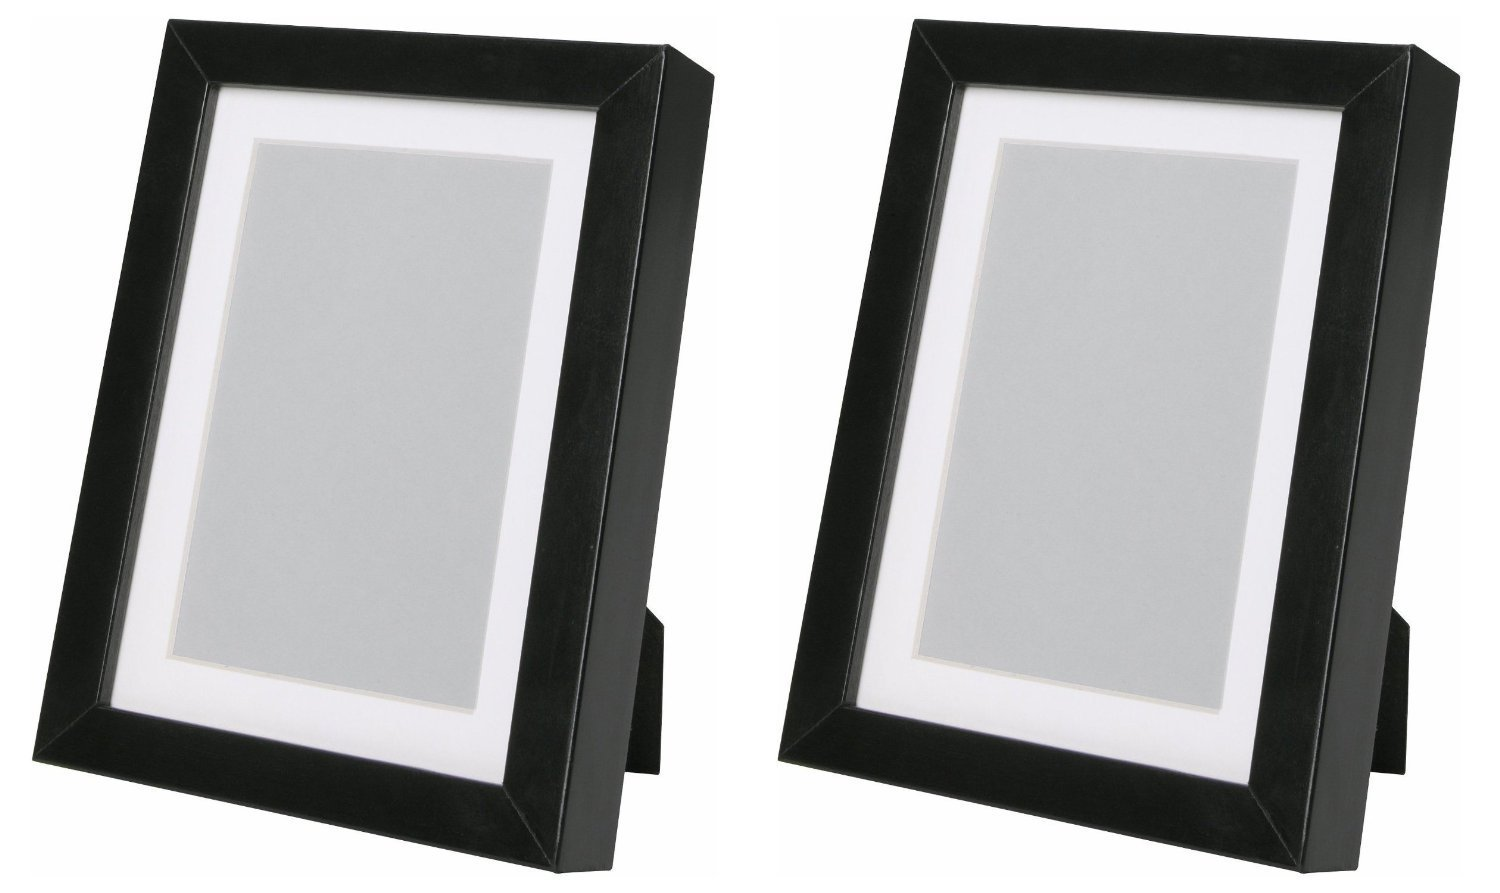 Ikea Ribba 5x7 Picture Frame. Black. Set of 2